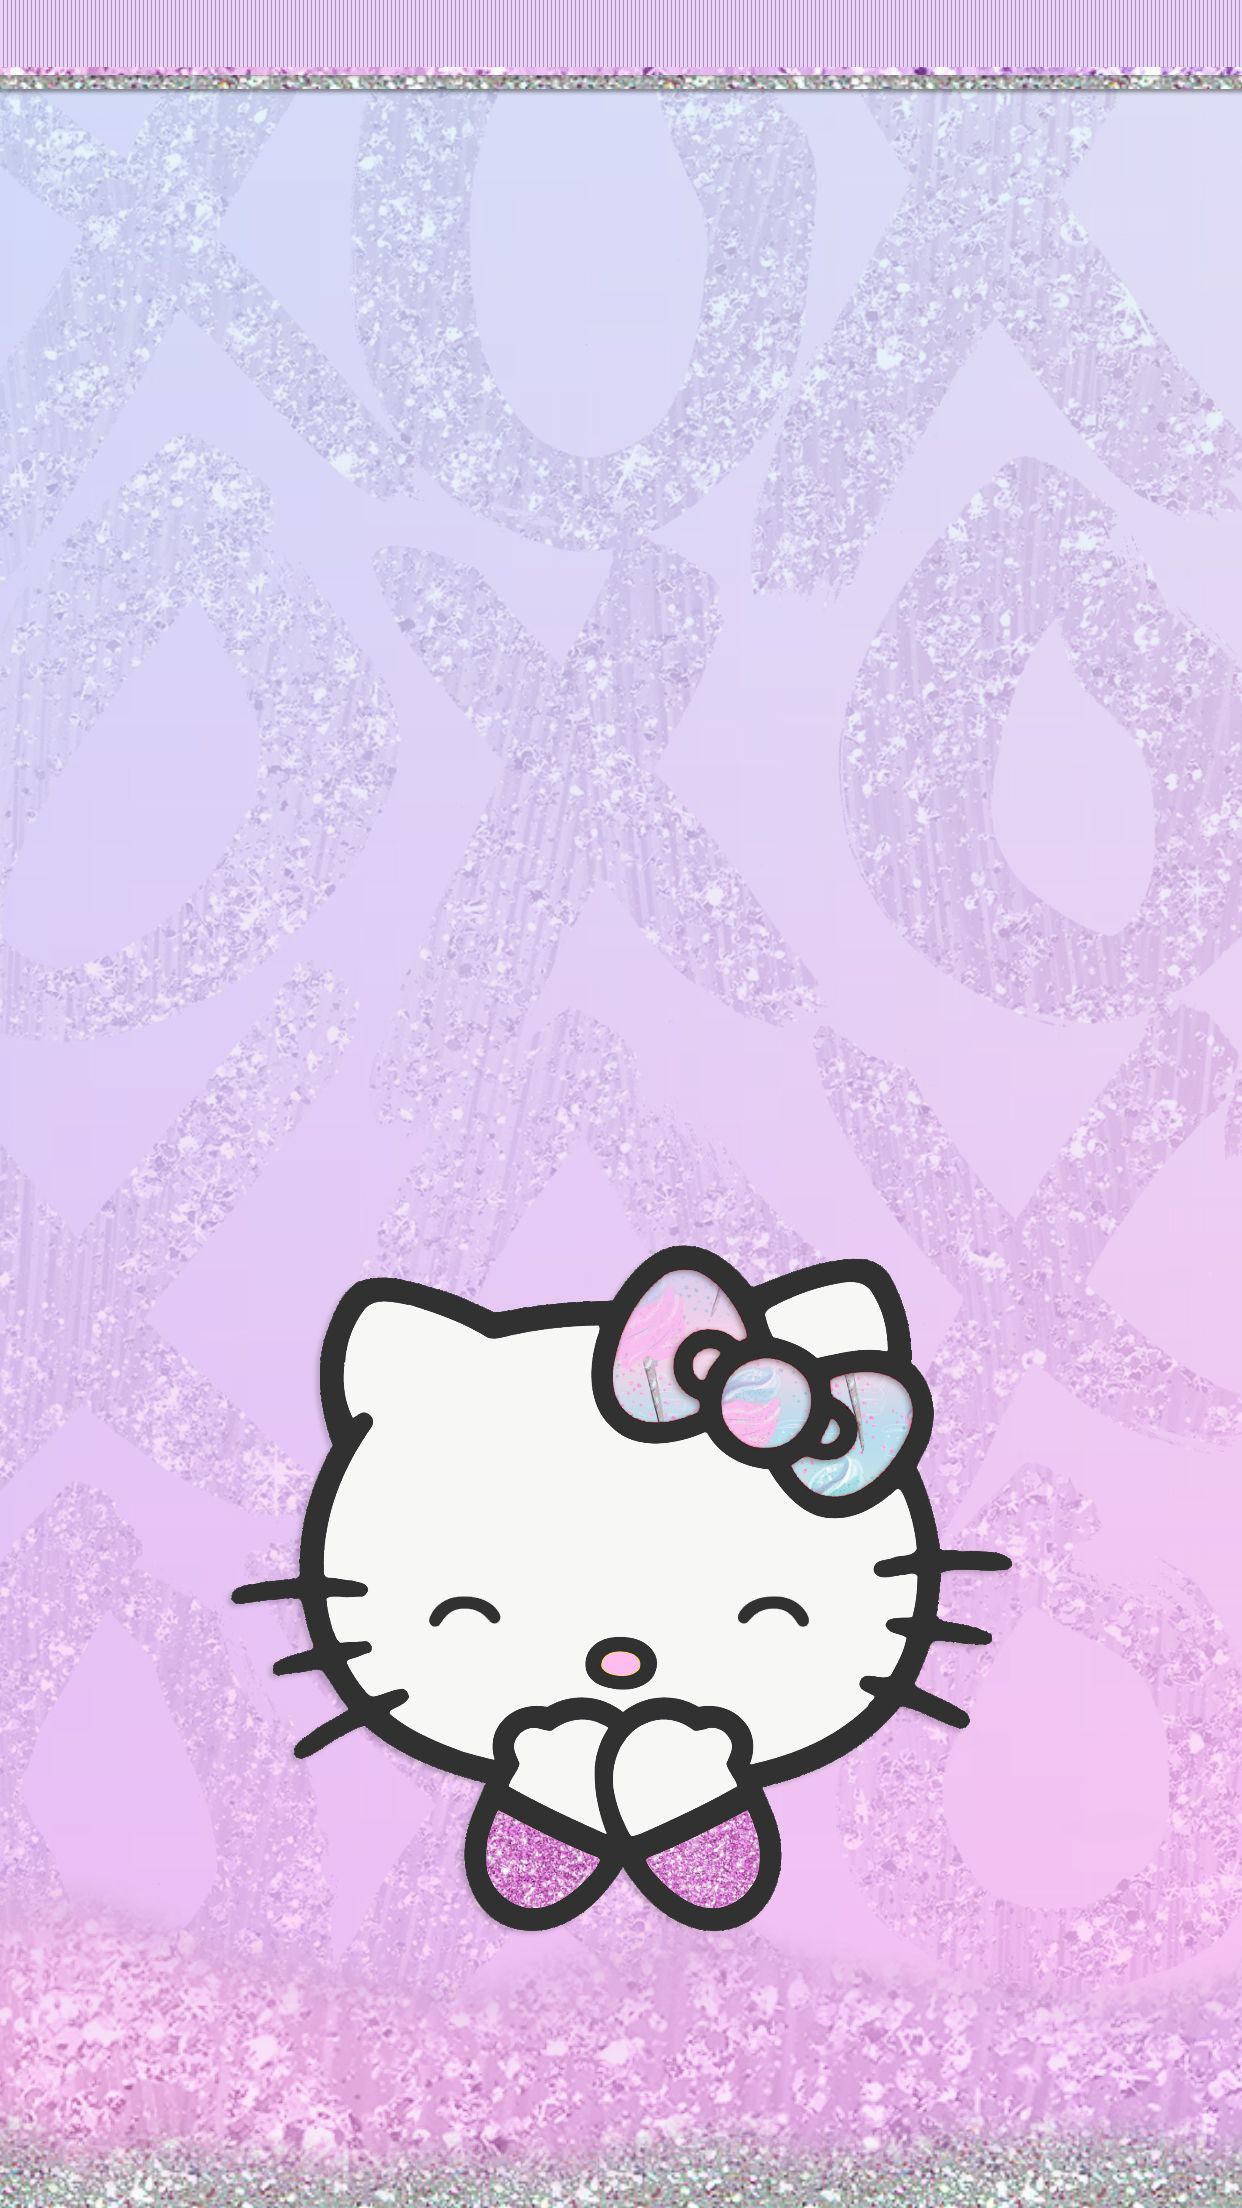 Good Wallpaper Mobile Hello Kitty - 0b617442e115afc0d45c3cf3fd82704e  Pic_52050.jpg